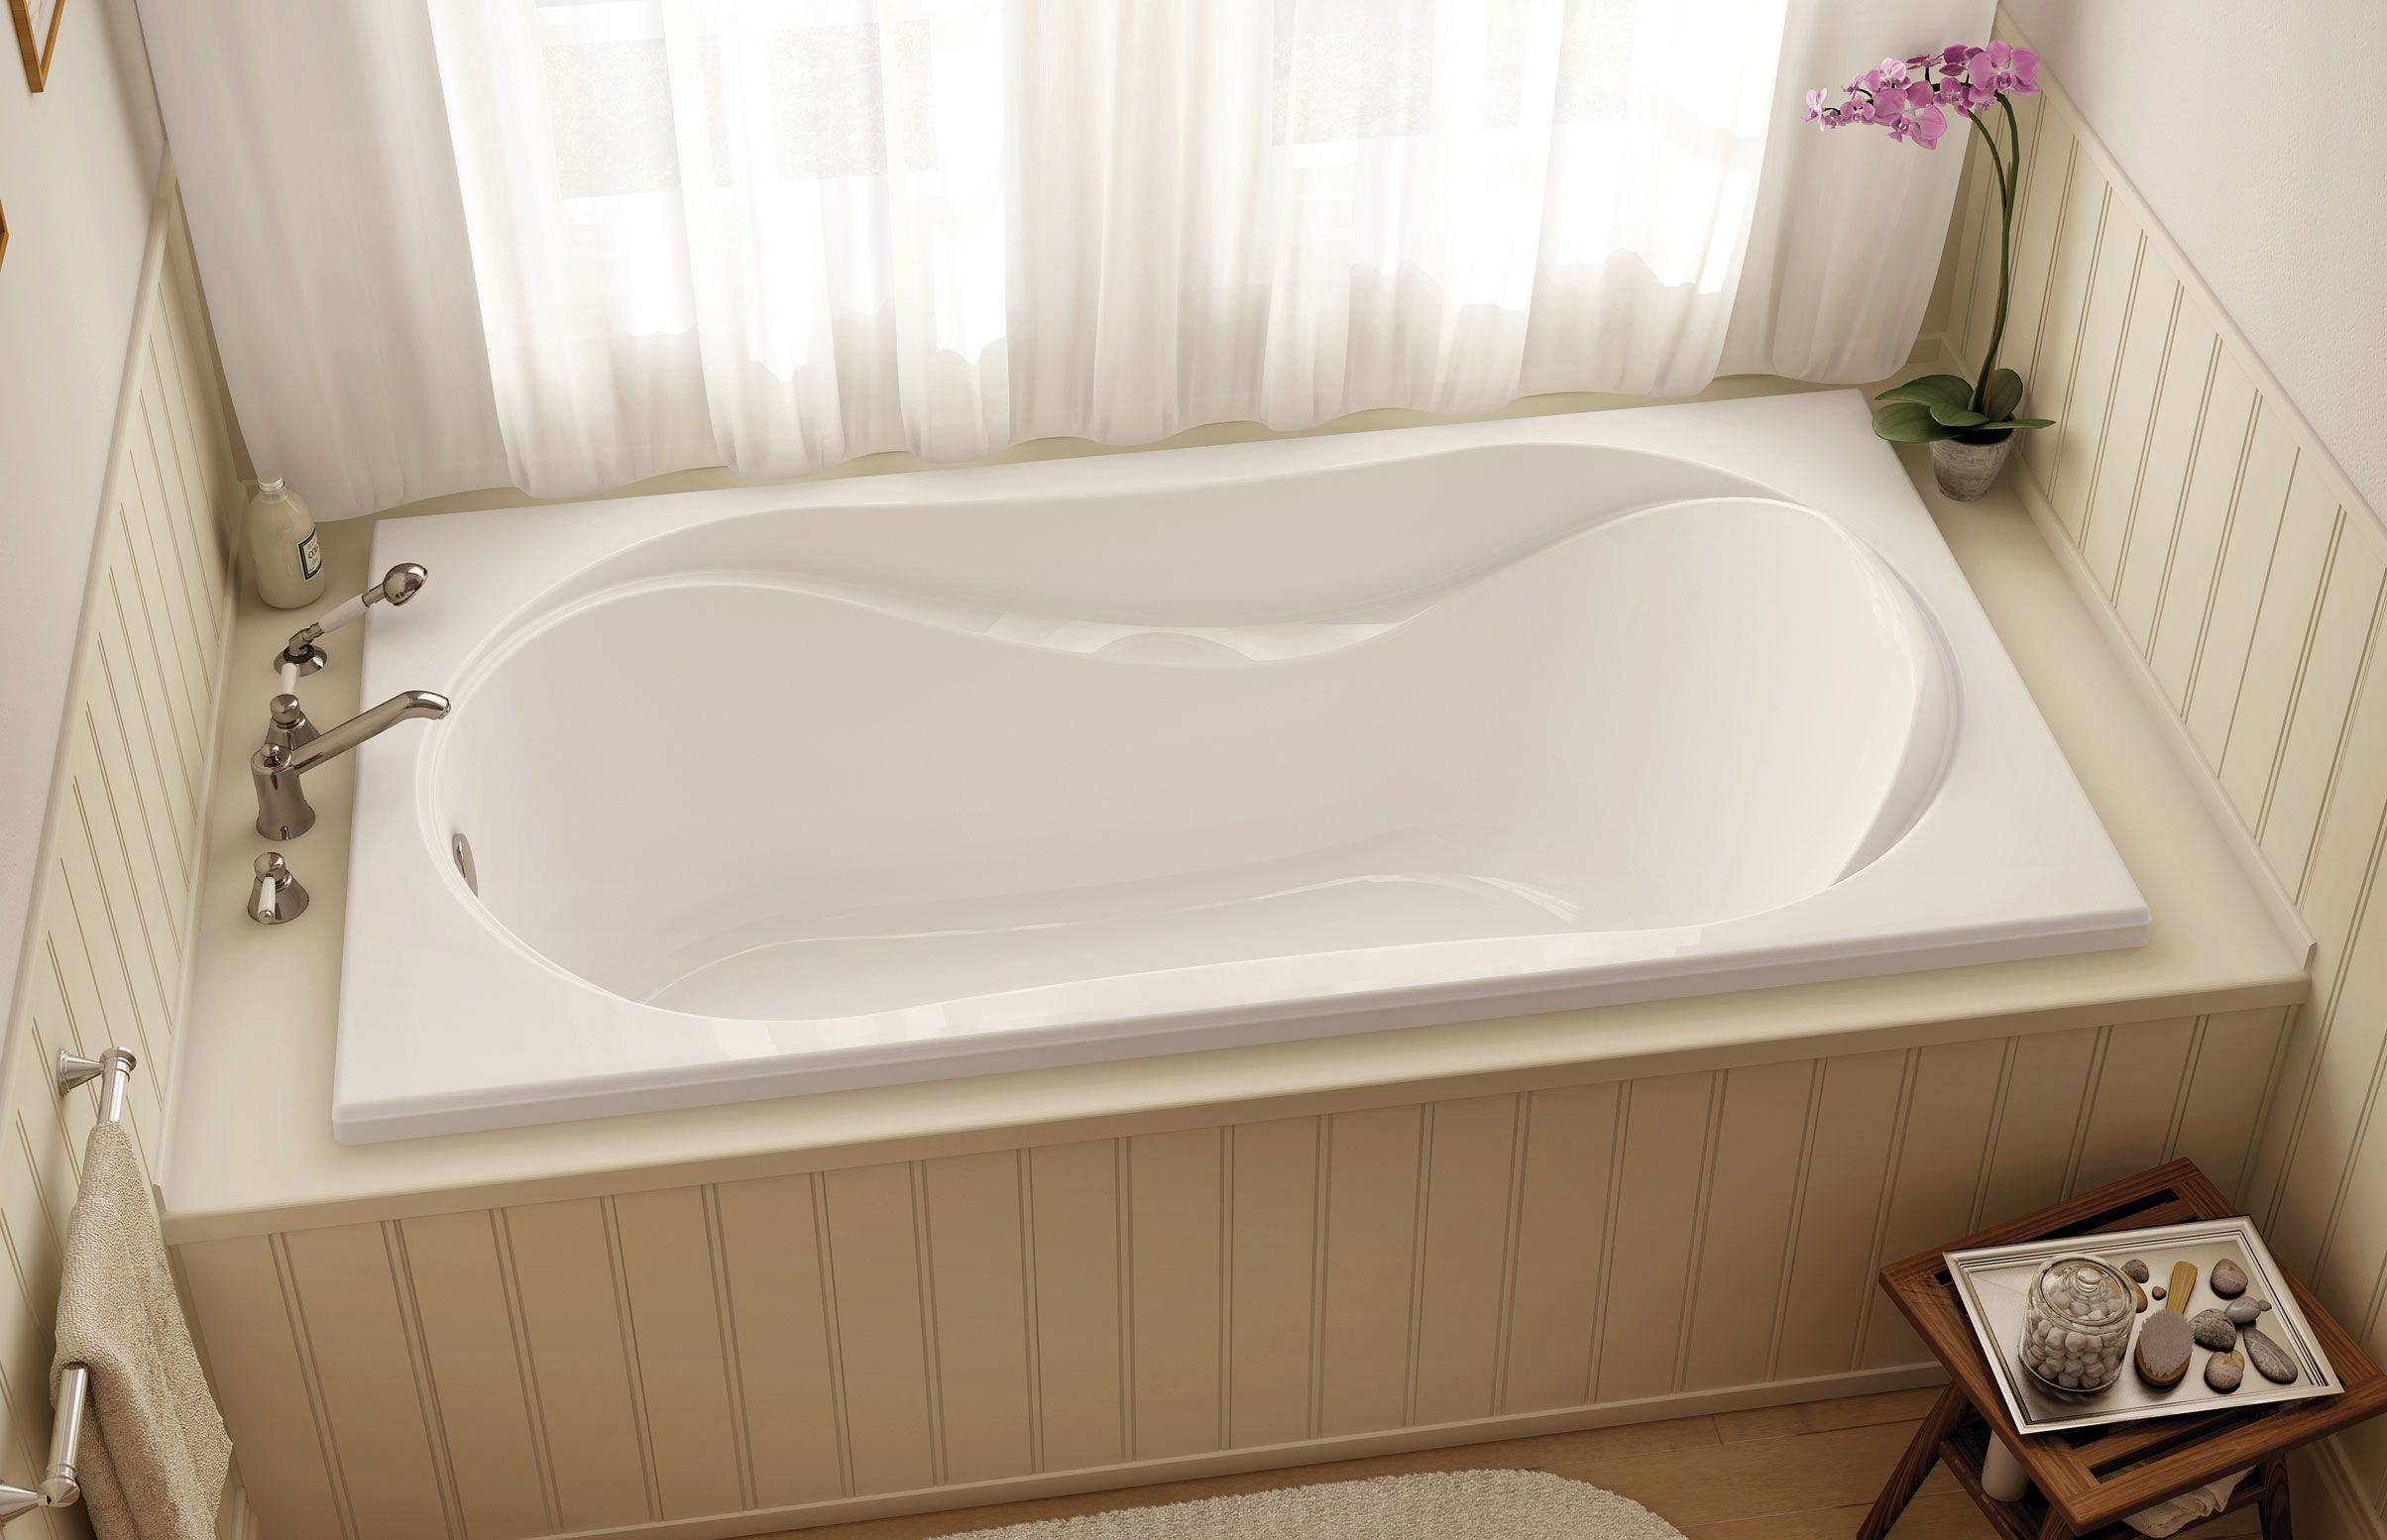 unique-kohler-whirlpool-tubs-with-graff-faucets-and-wainscoting ...